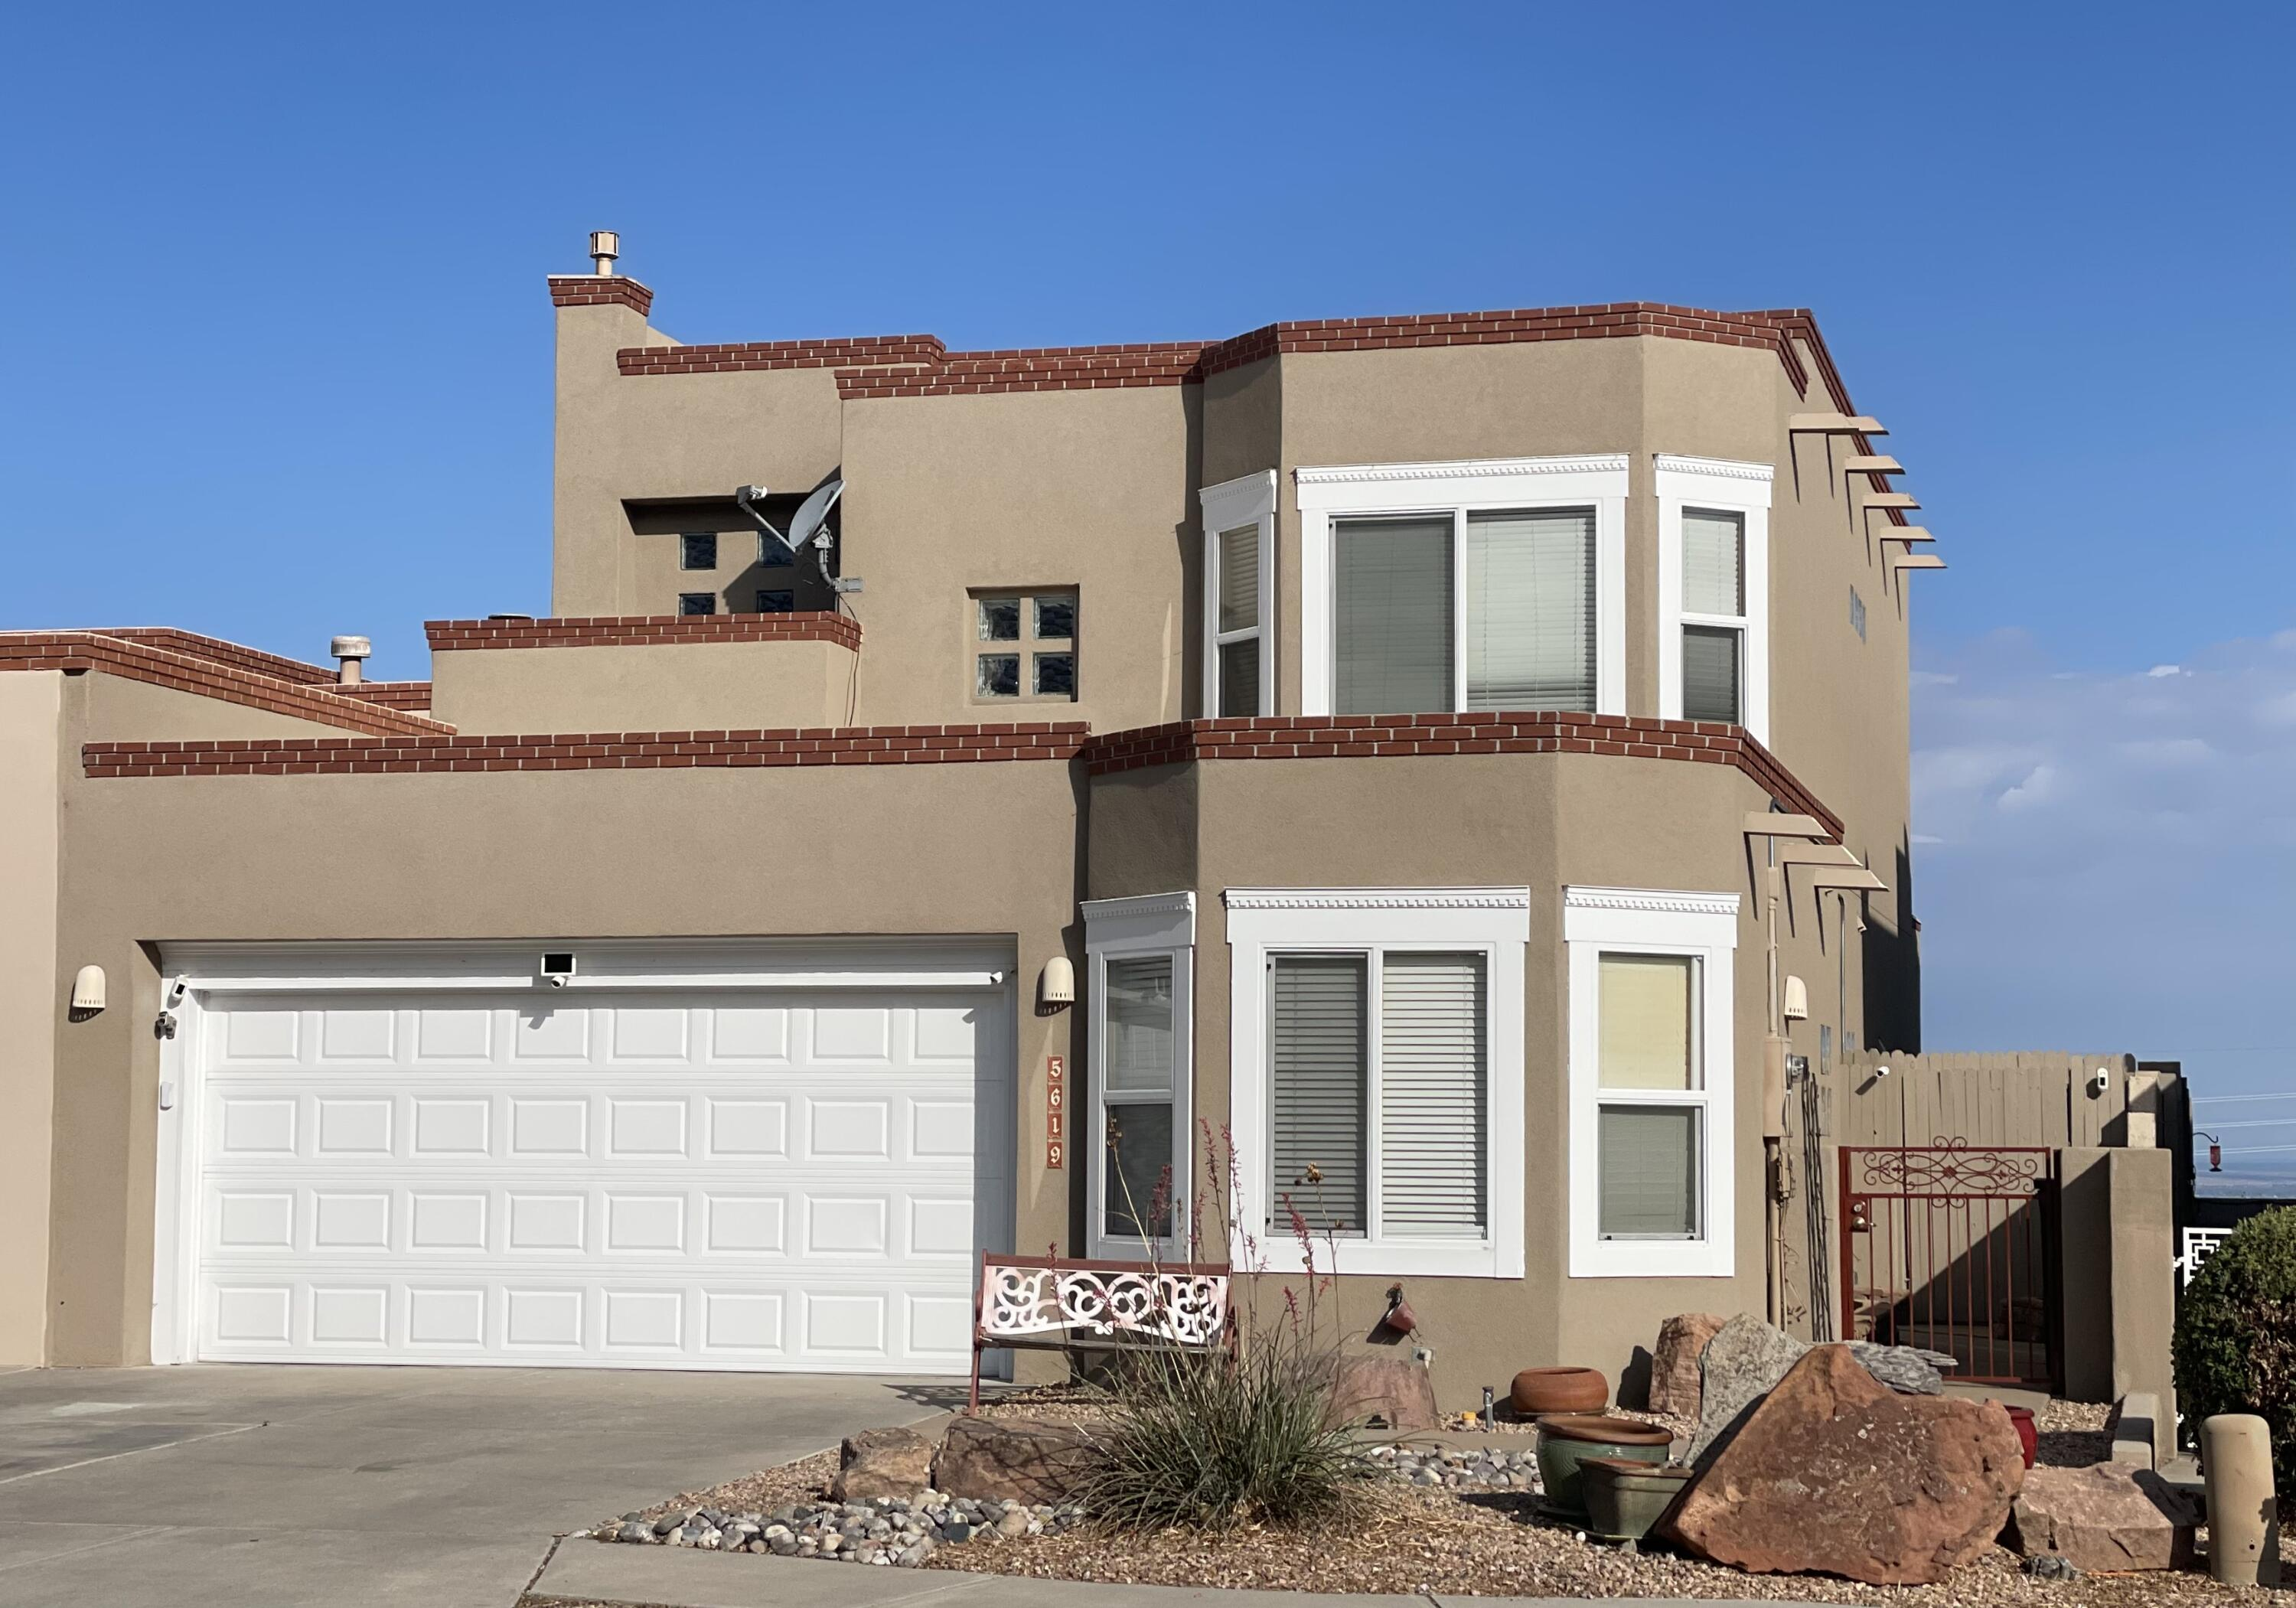 New new price! Seller is very motivated. Did you say views?! Beautiful home in High Desert, with wonderful views, a great floorplan and a second master on the first floor. Brand new TPO roof with 20 year warranty. Stucco 3 years, new screens, widows inside and out sealed, calked and painted. Swamp cooler 3 years, water heater 1 year. The backyard has a hot tub, synthetic turf, and decorative privacy panels. Stainless steel appliances, granite countertops, lots of cupboards. There is an alarm system and a water filter system. The home is attached but not by any common use  walls - a garage and a bathroom far wall. Beautiful community - only one way in and out of the Aerie Community. Come see this beautiful home.